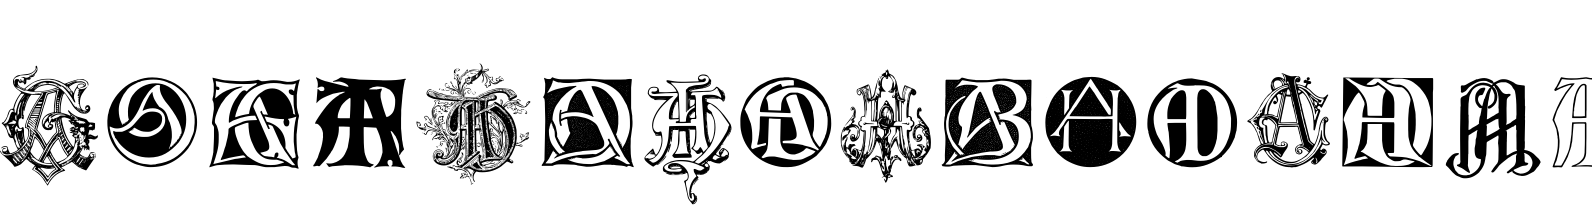 Intellecta Monograms